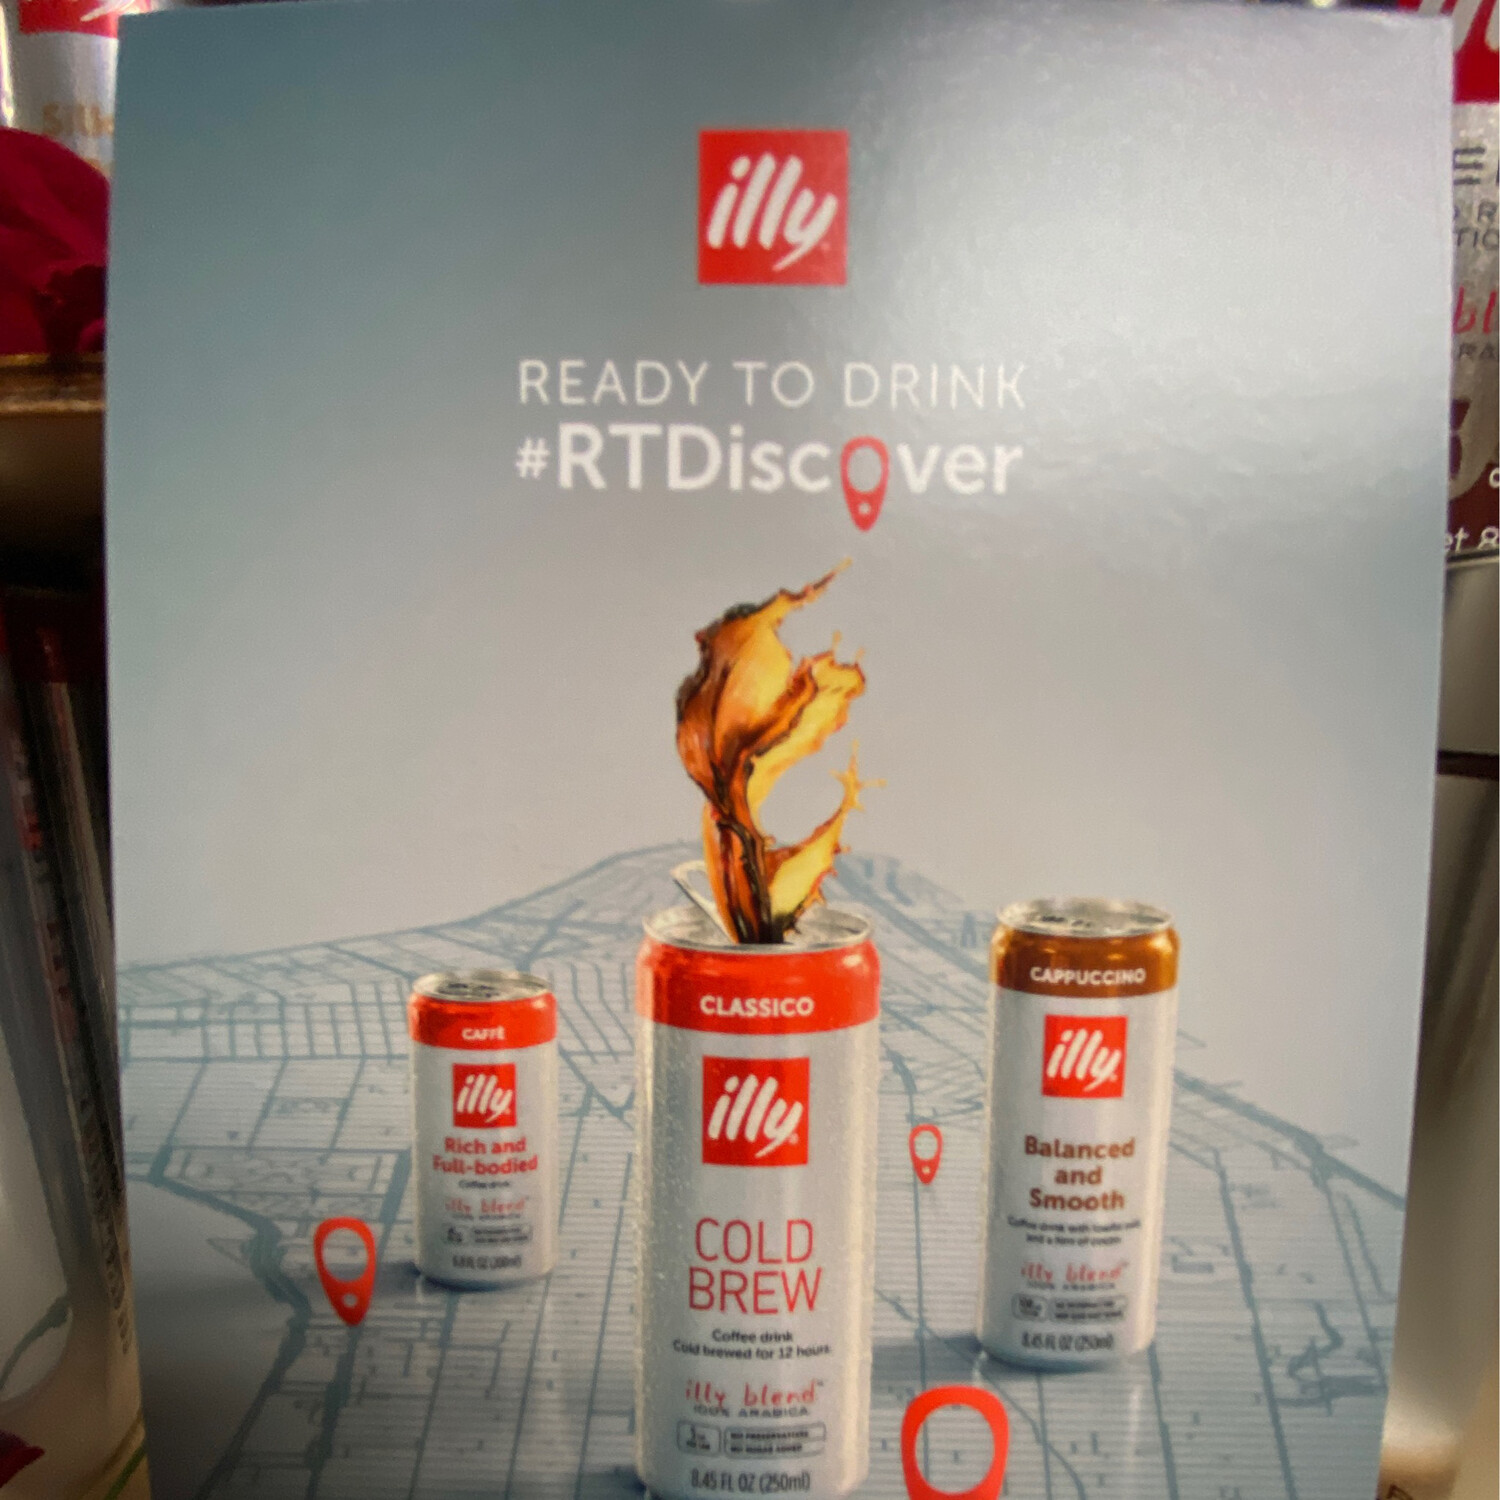 Illy Cold Brew Drink